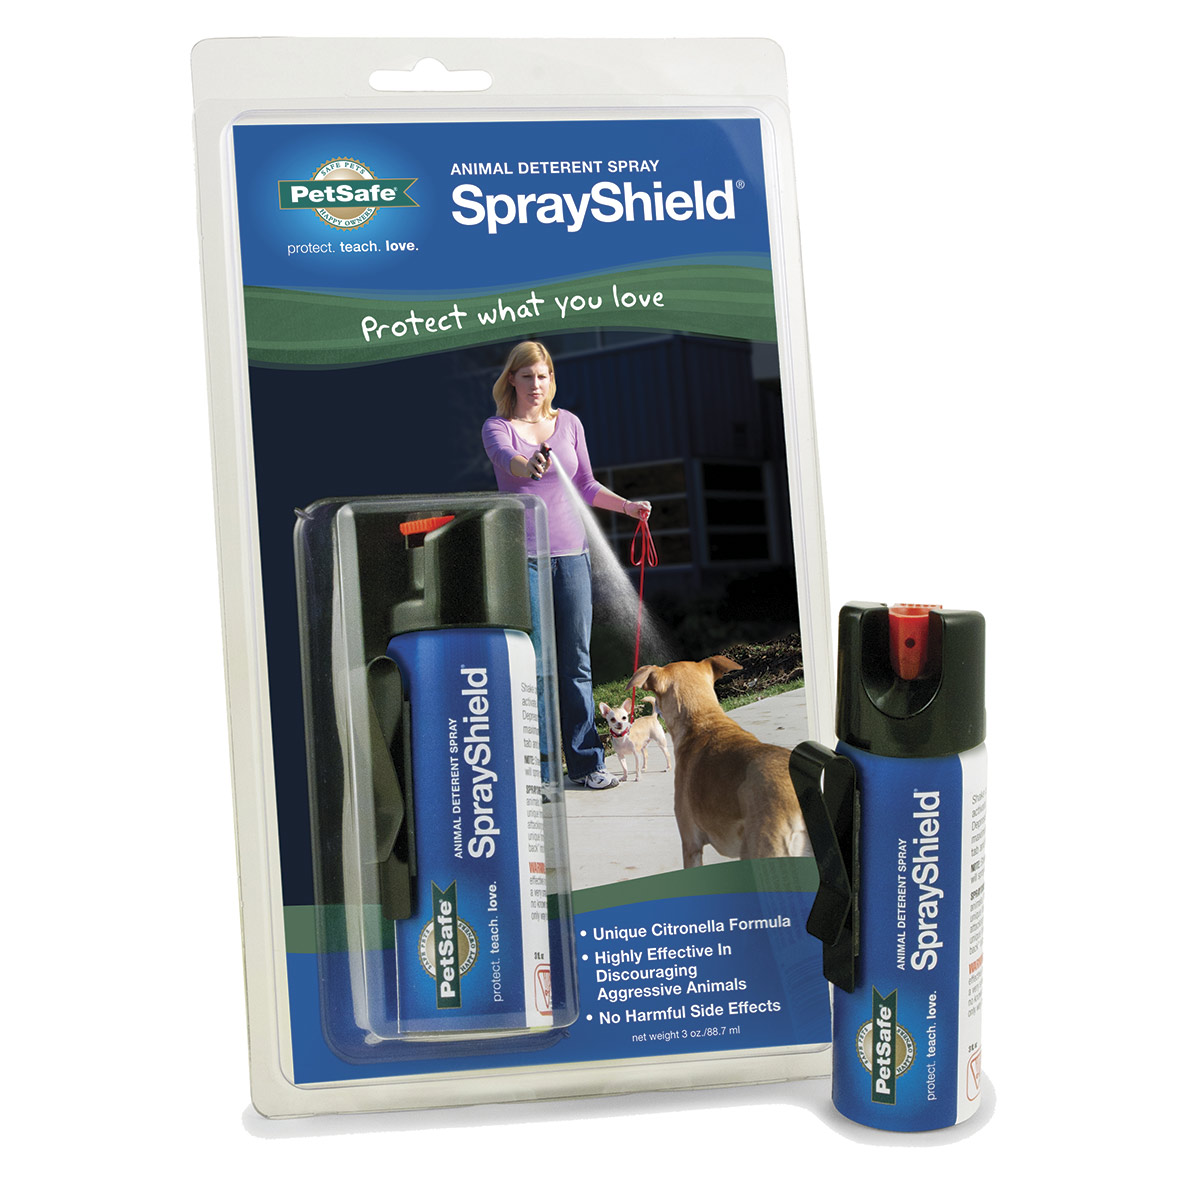 SprayShield Animal Deterrent Spray with Citronella 3 oz